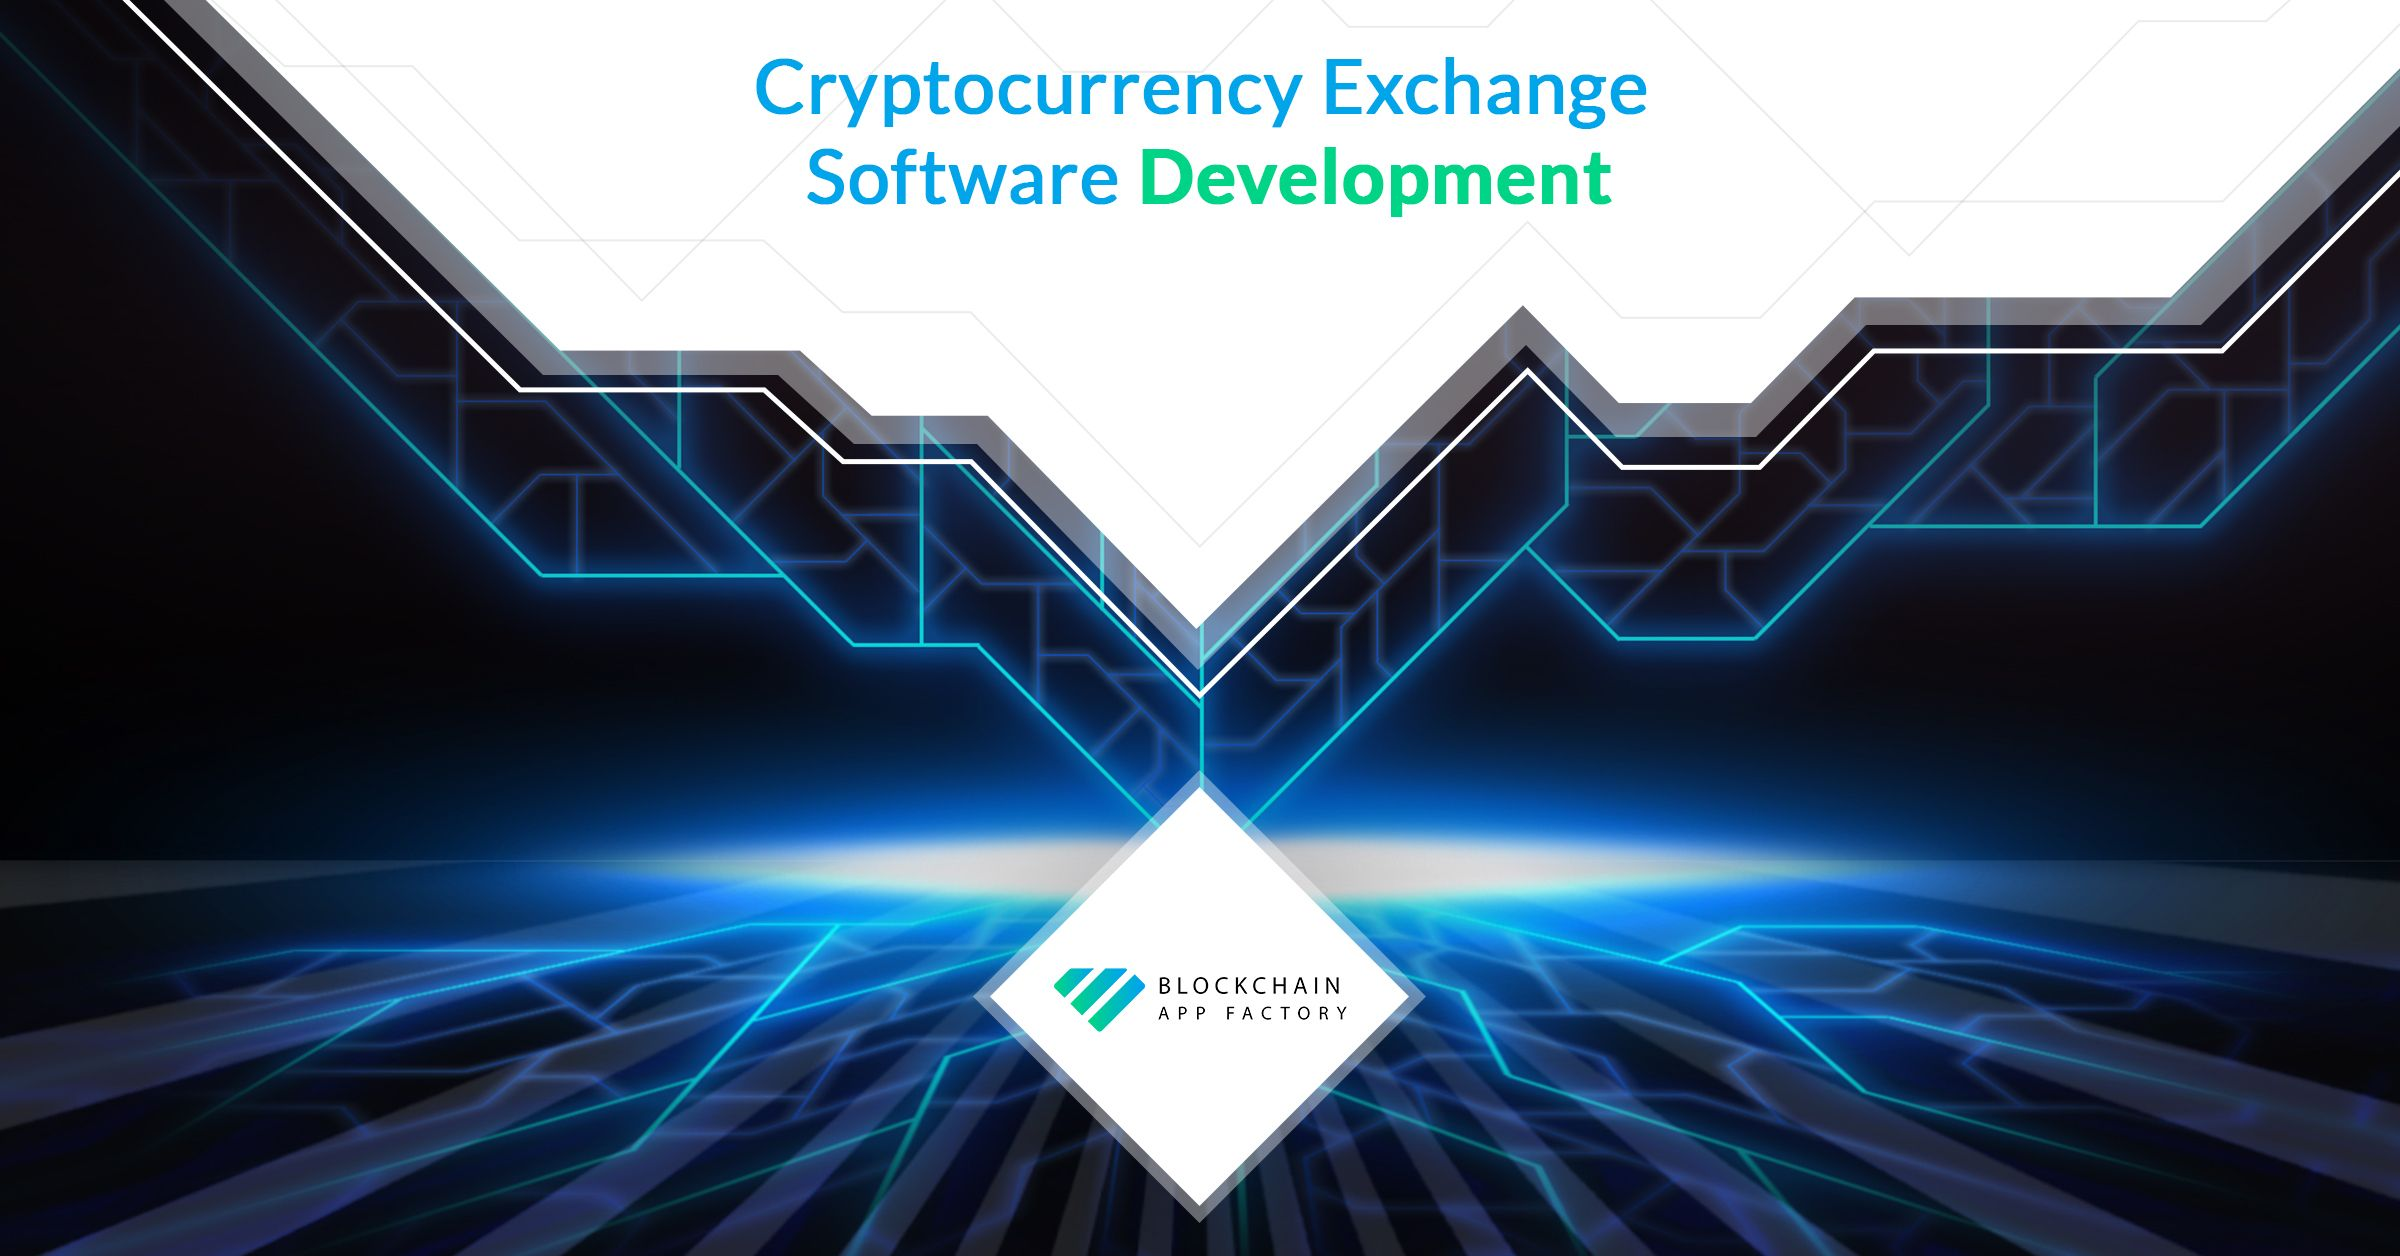 who developed cryptocurrency